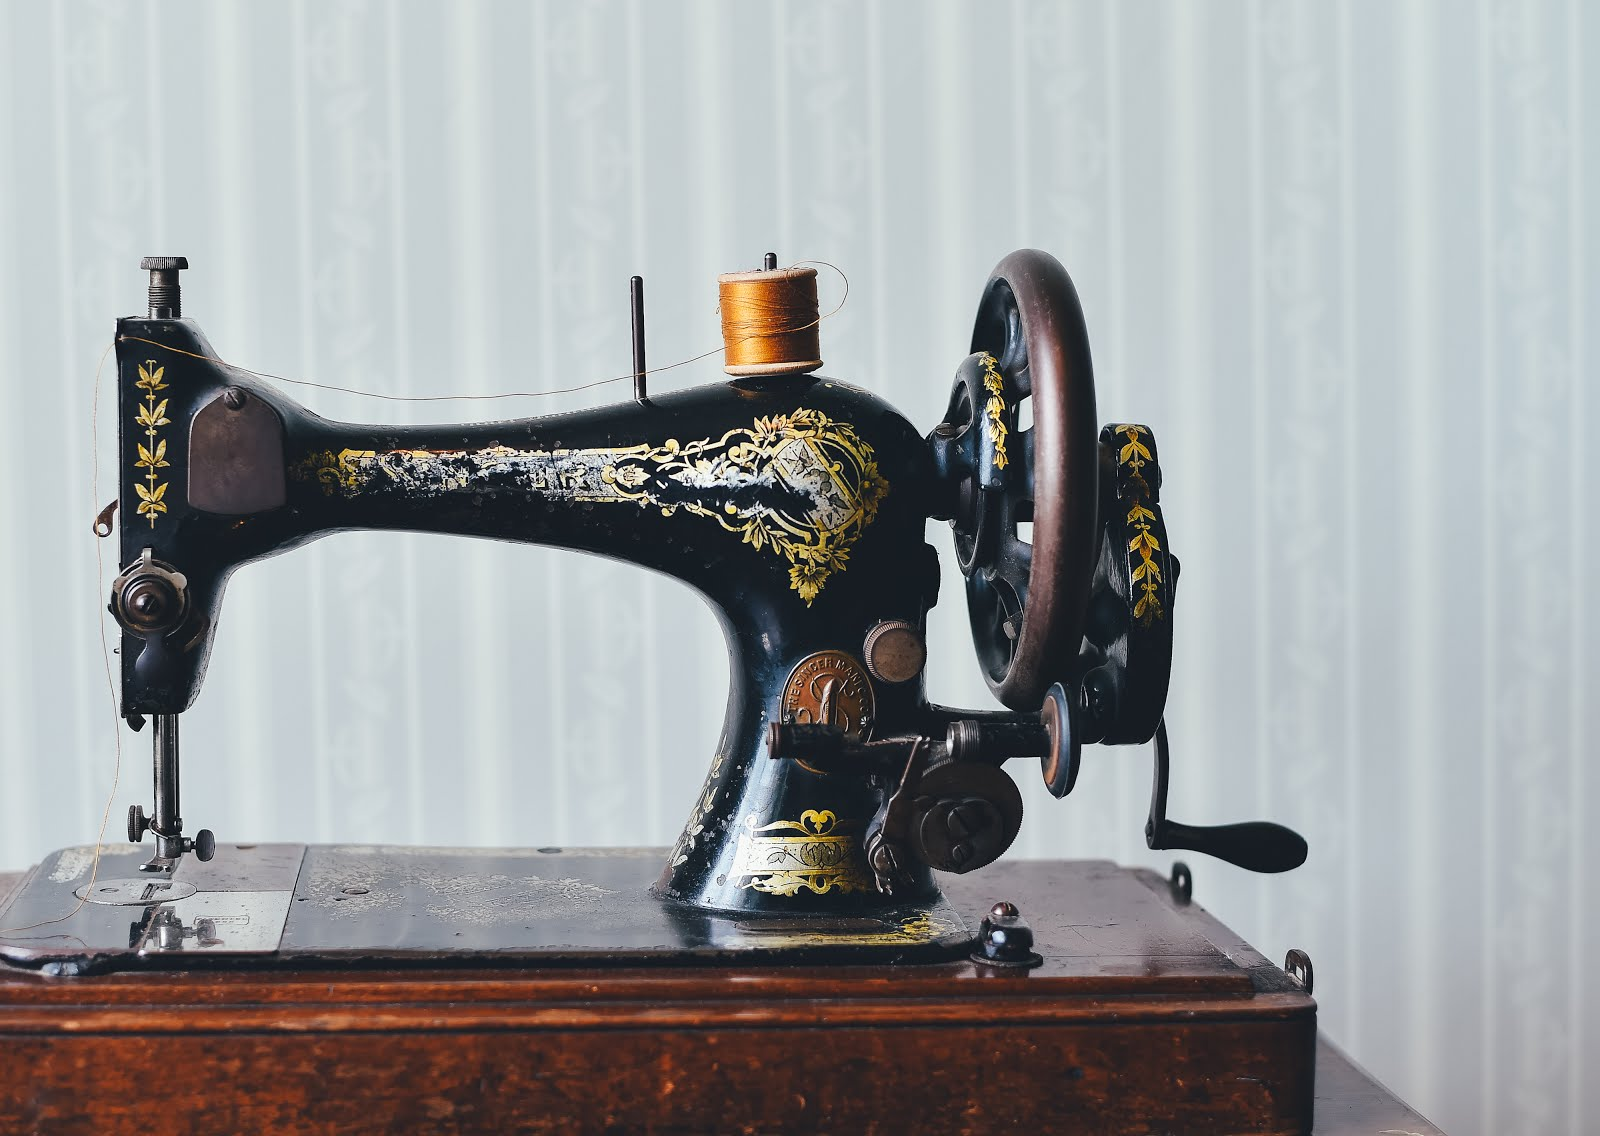 Beginner's guide to sewing your first dress - what you need